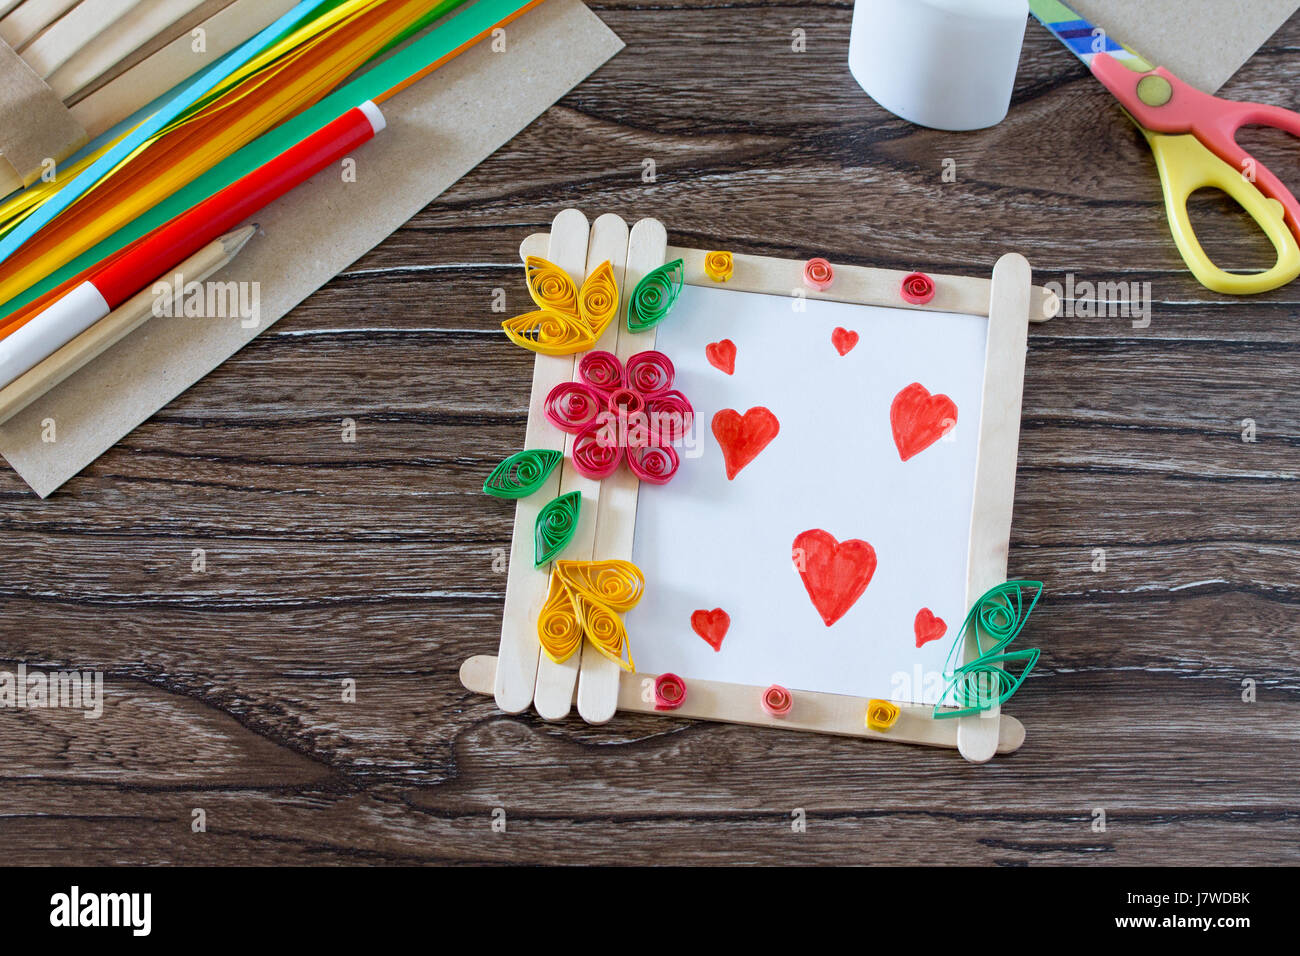 Childrens Gift From Wooden Sticks Photo Frame Birthday Greeting Card On The Desk Handmade Project Of Creativity Handicrafts Crafts Fo